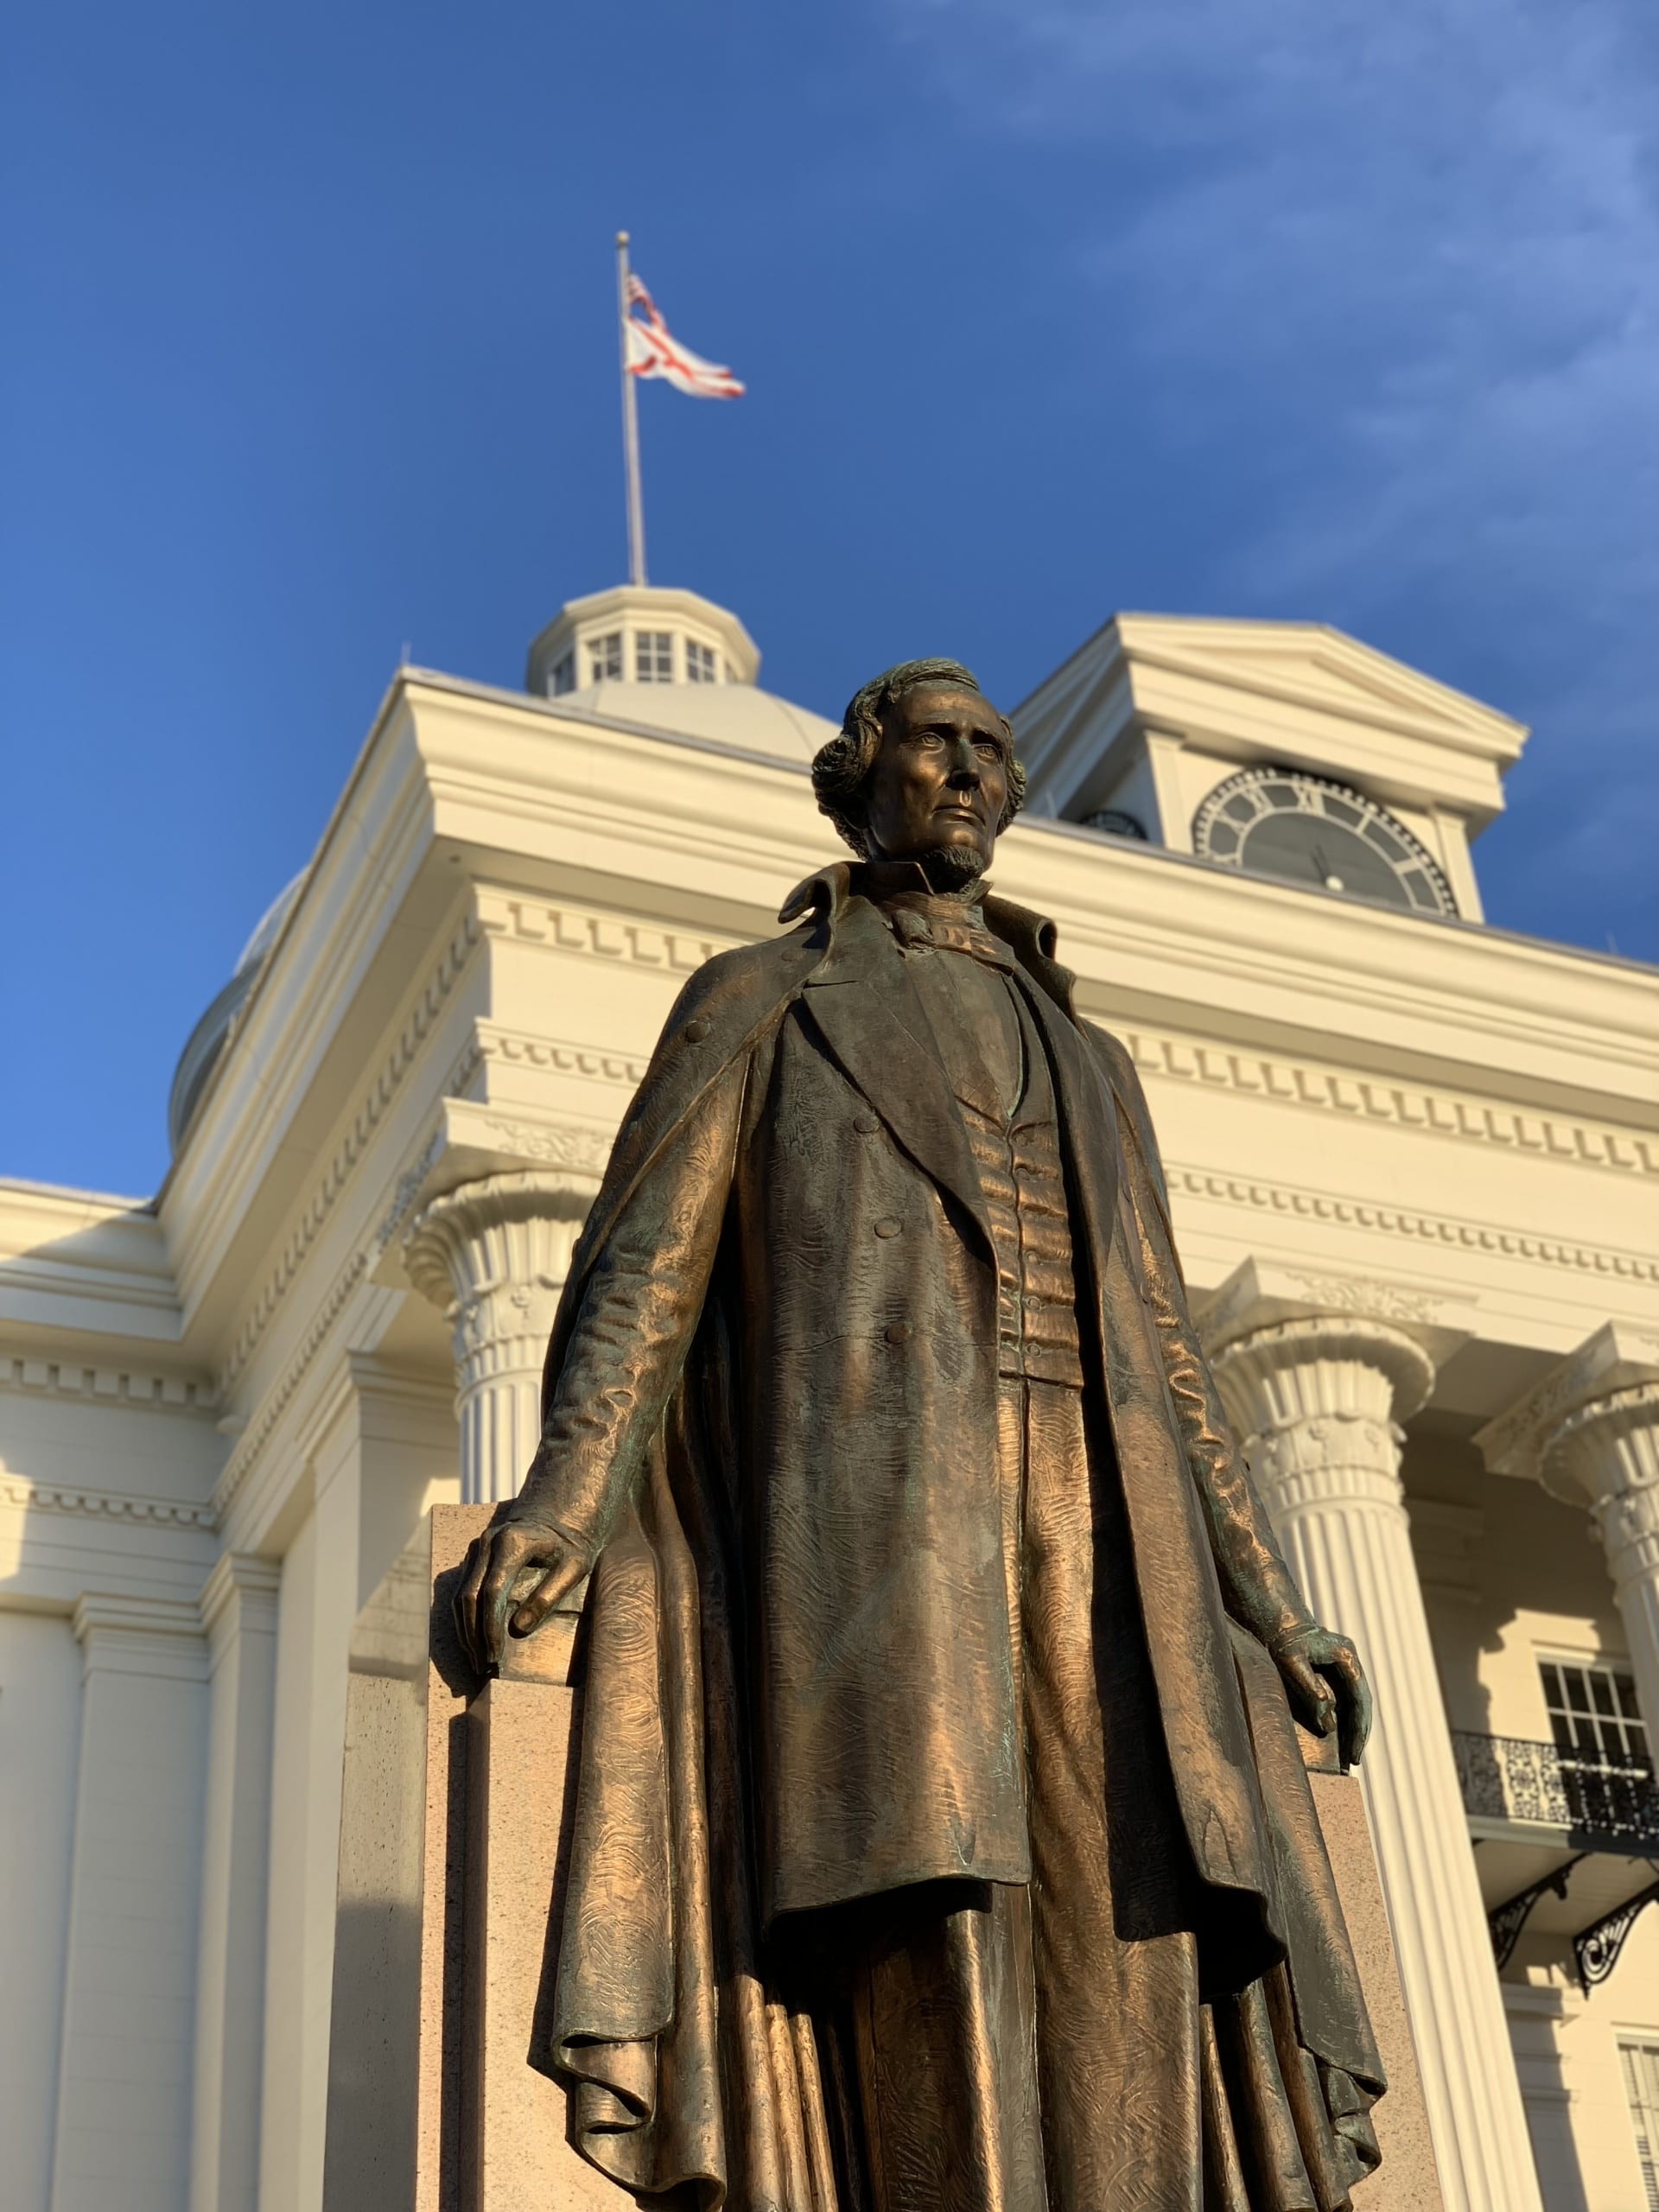 over life size bronze sculpture of Jefferson Davis with arms outstretched